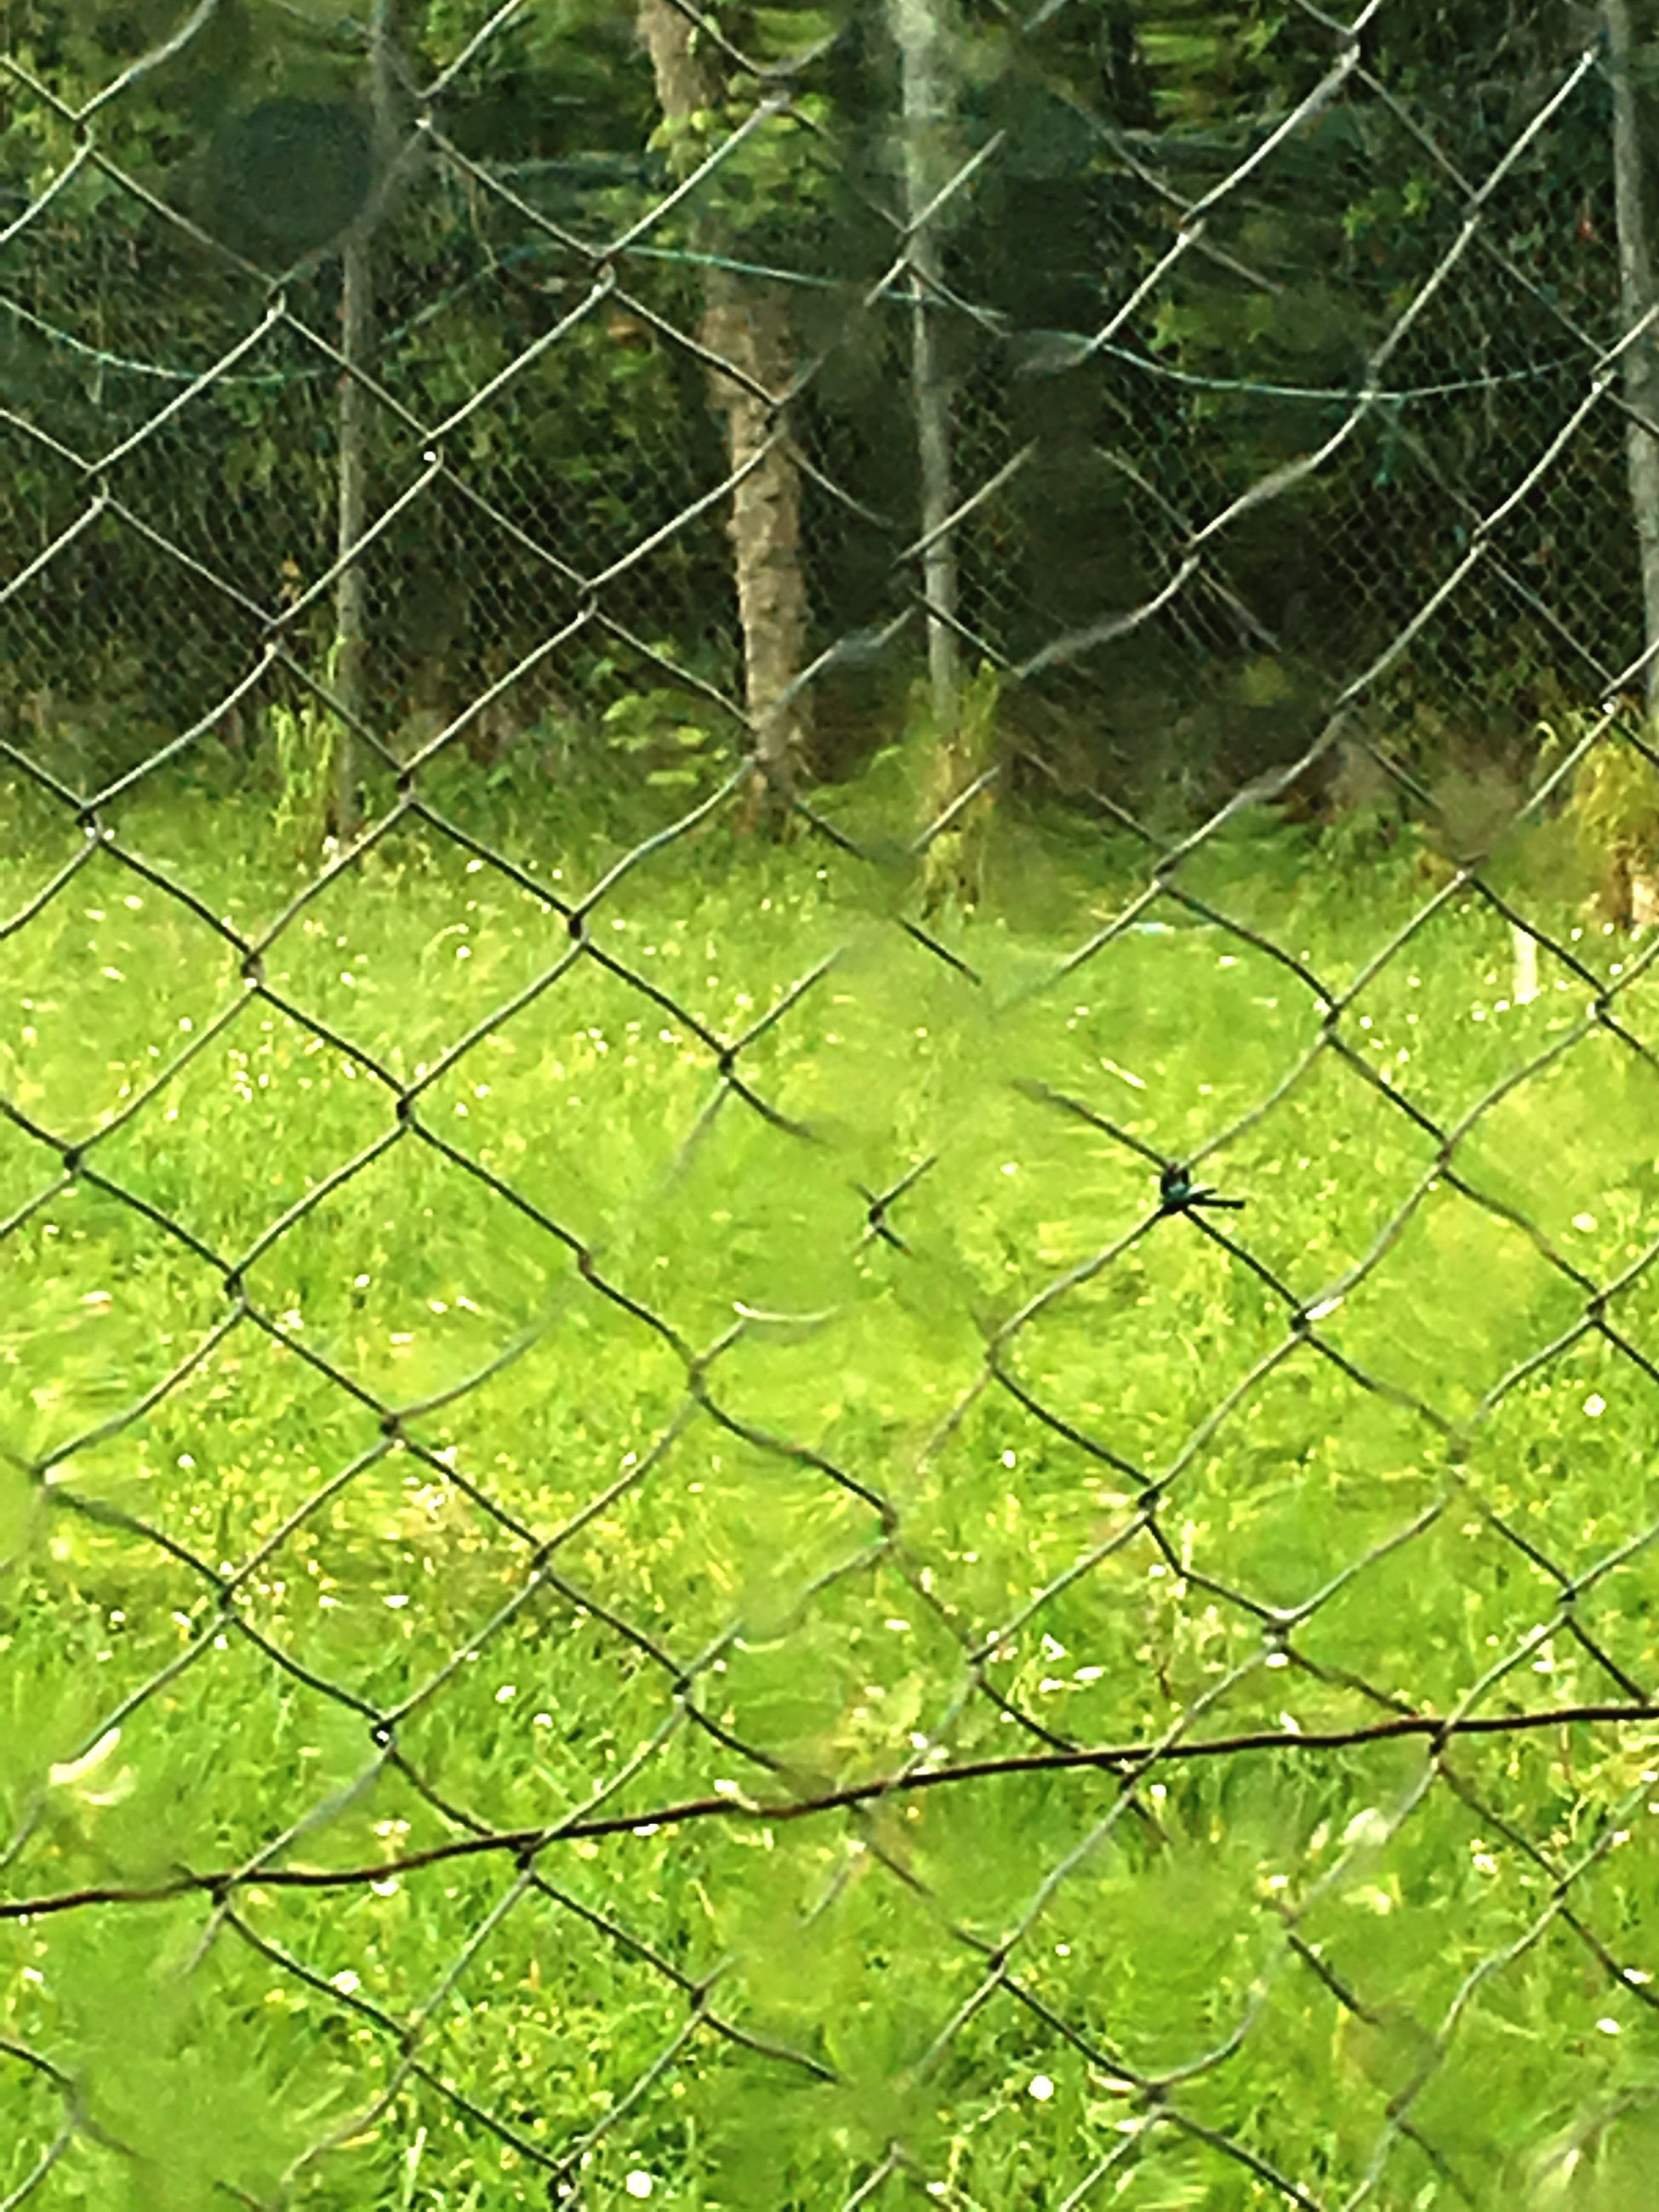 green color, outdoors, protection, day, soccer, full frame, nature, net - sports equipment, focus on foreground, no people, backgrounds, sport, close-up, soccer field, grass, playing field